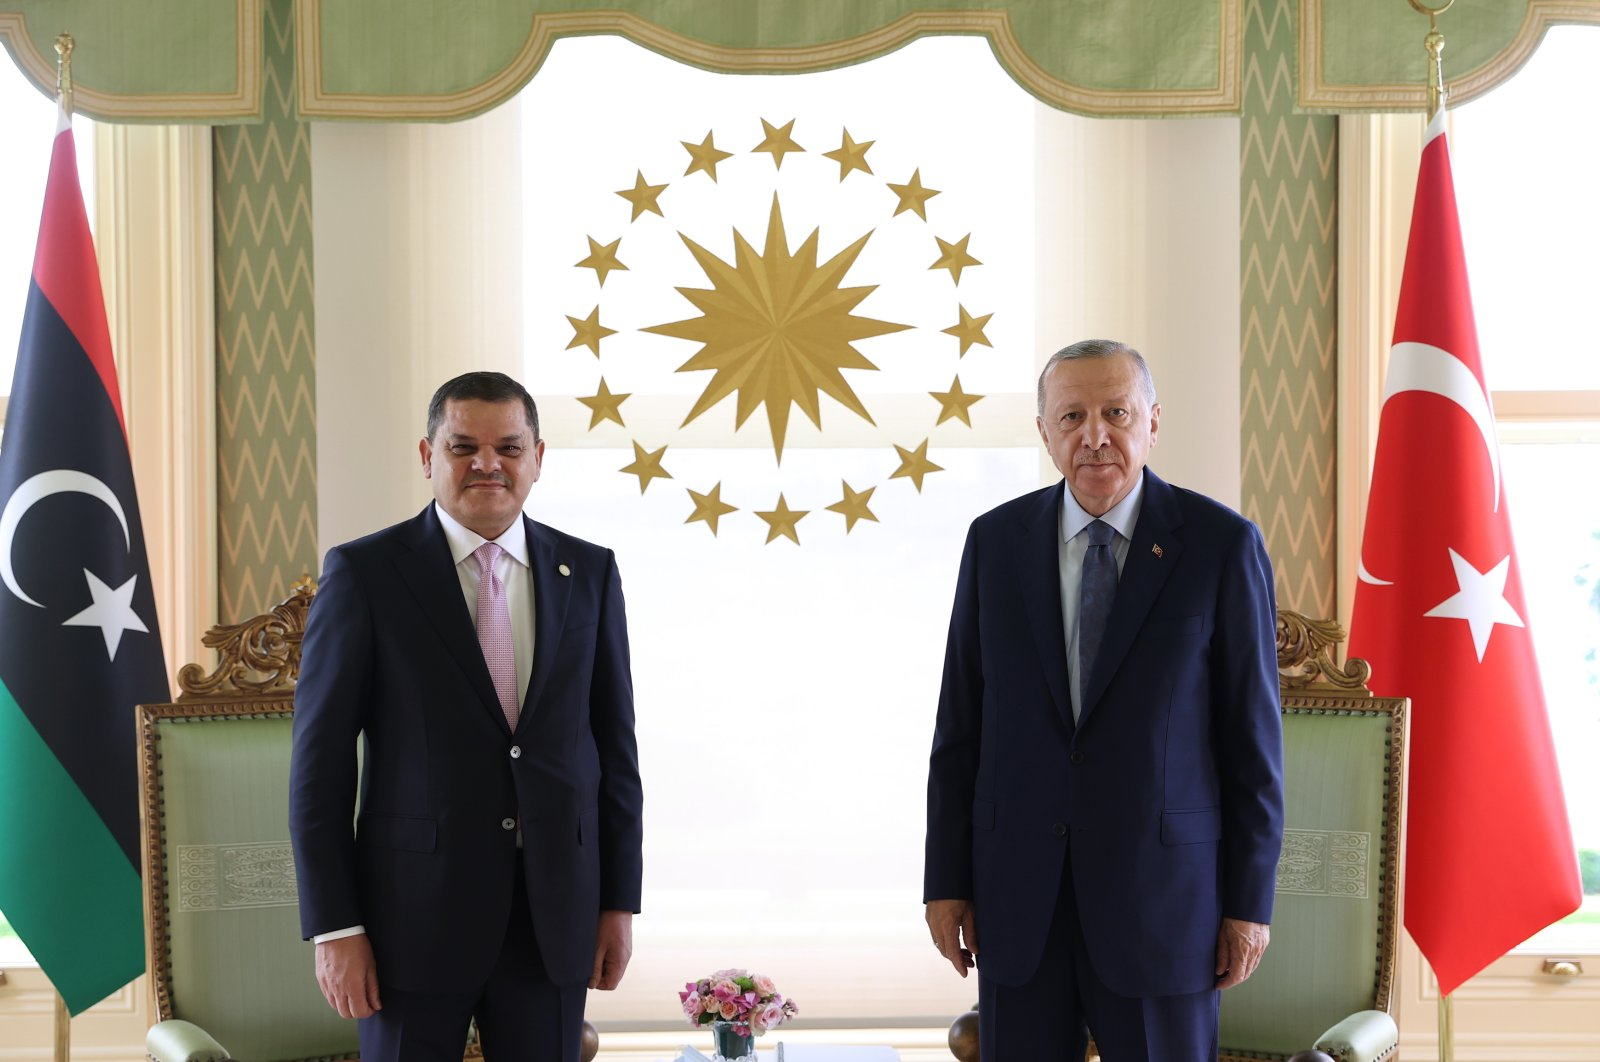 Turkish President Recep Tayyip Erdoğan (R) poses for a photo with the Libyan Prime Minister Abdul Hamid Dbeibah in Istanbul, Aug. 7, 2021. (AA Photo)